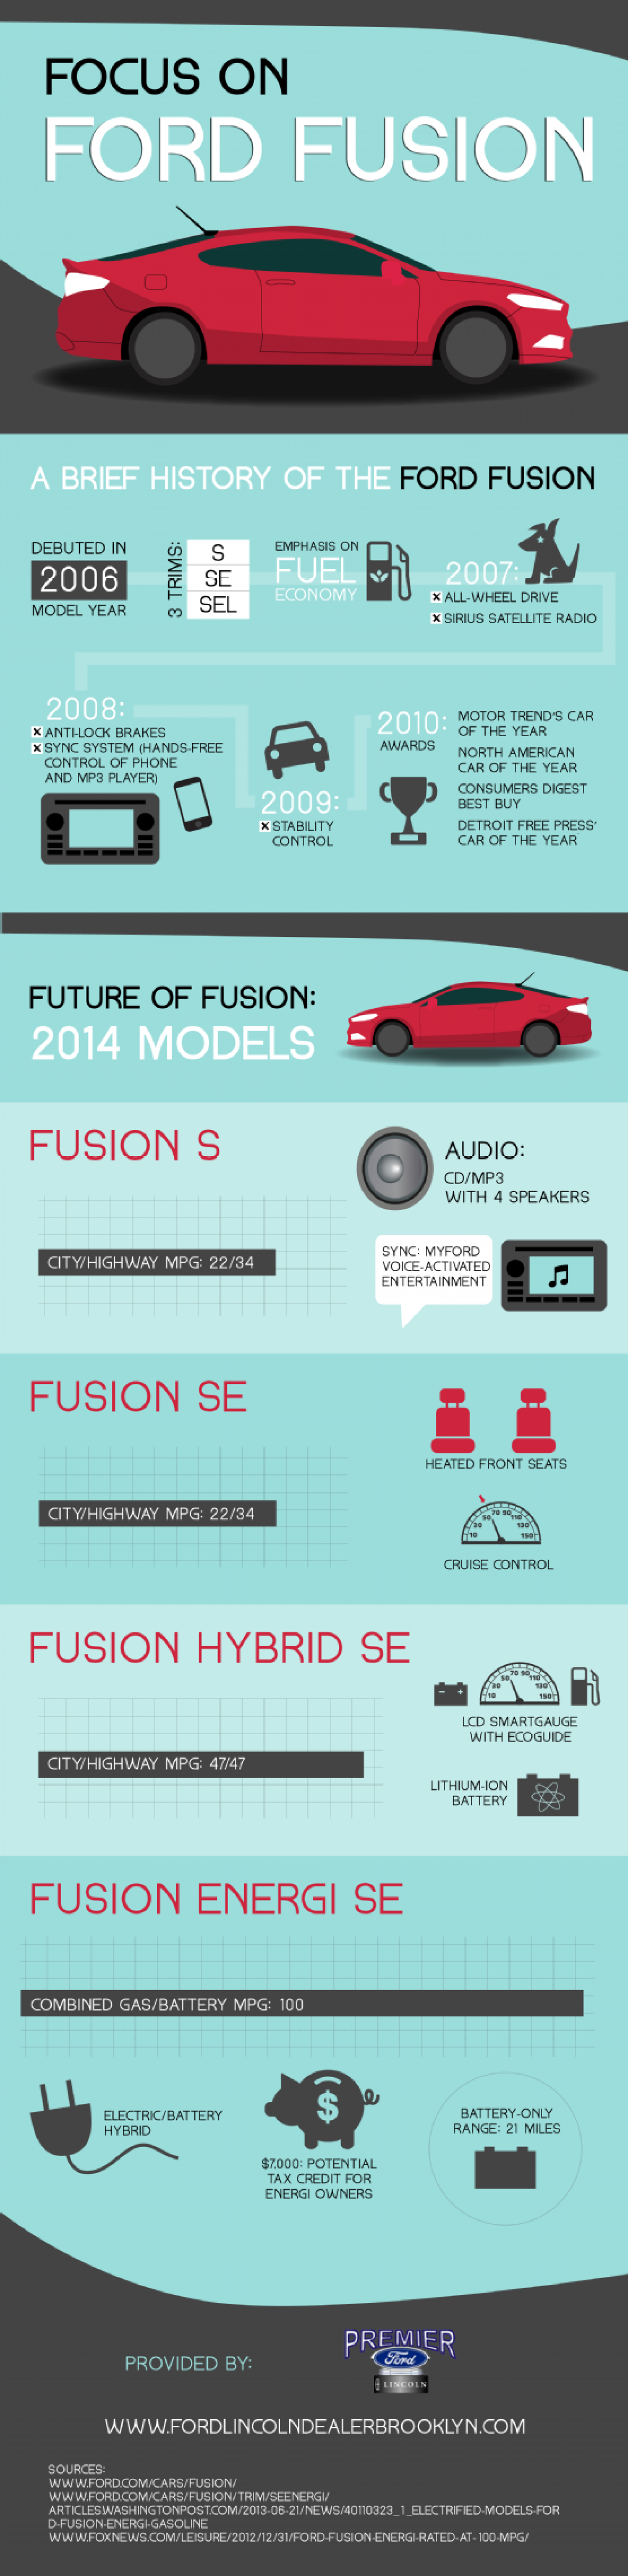 Evolution of the Ford Fusion Infographic